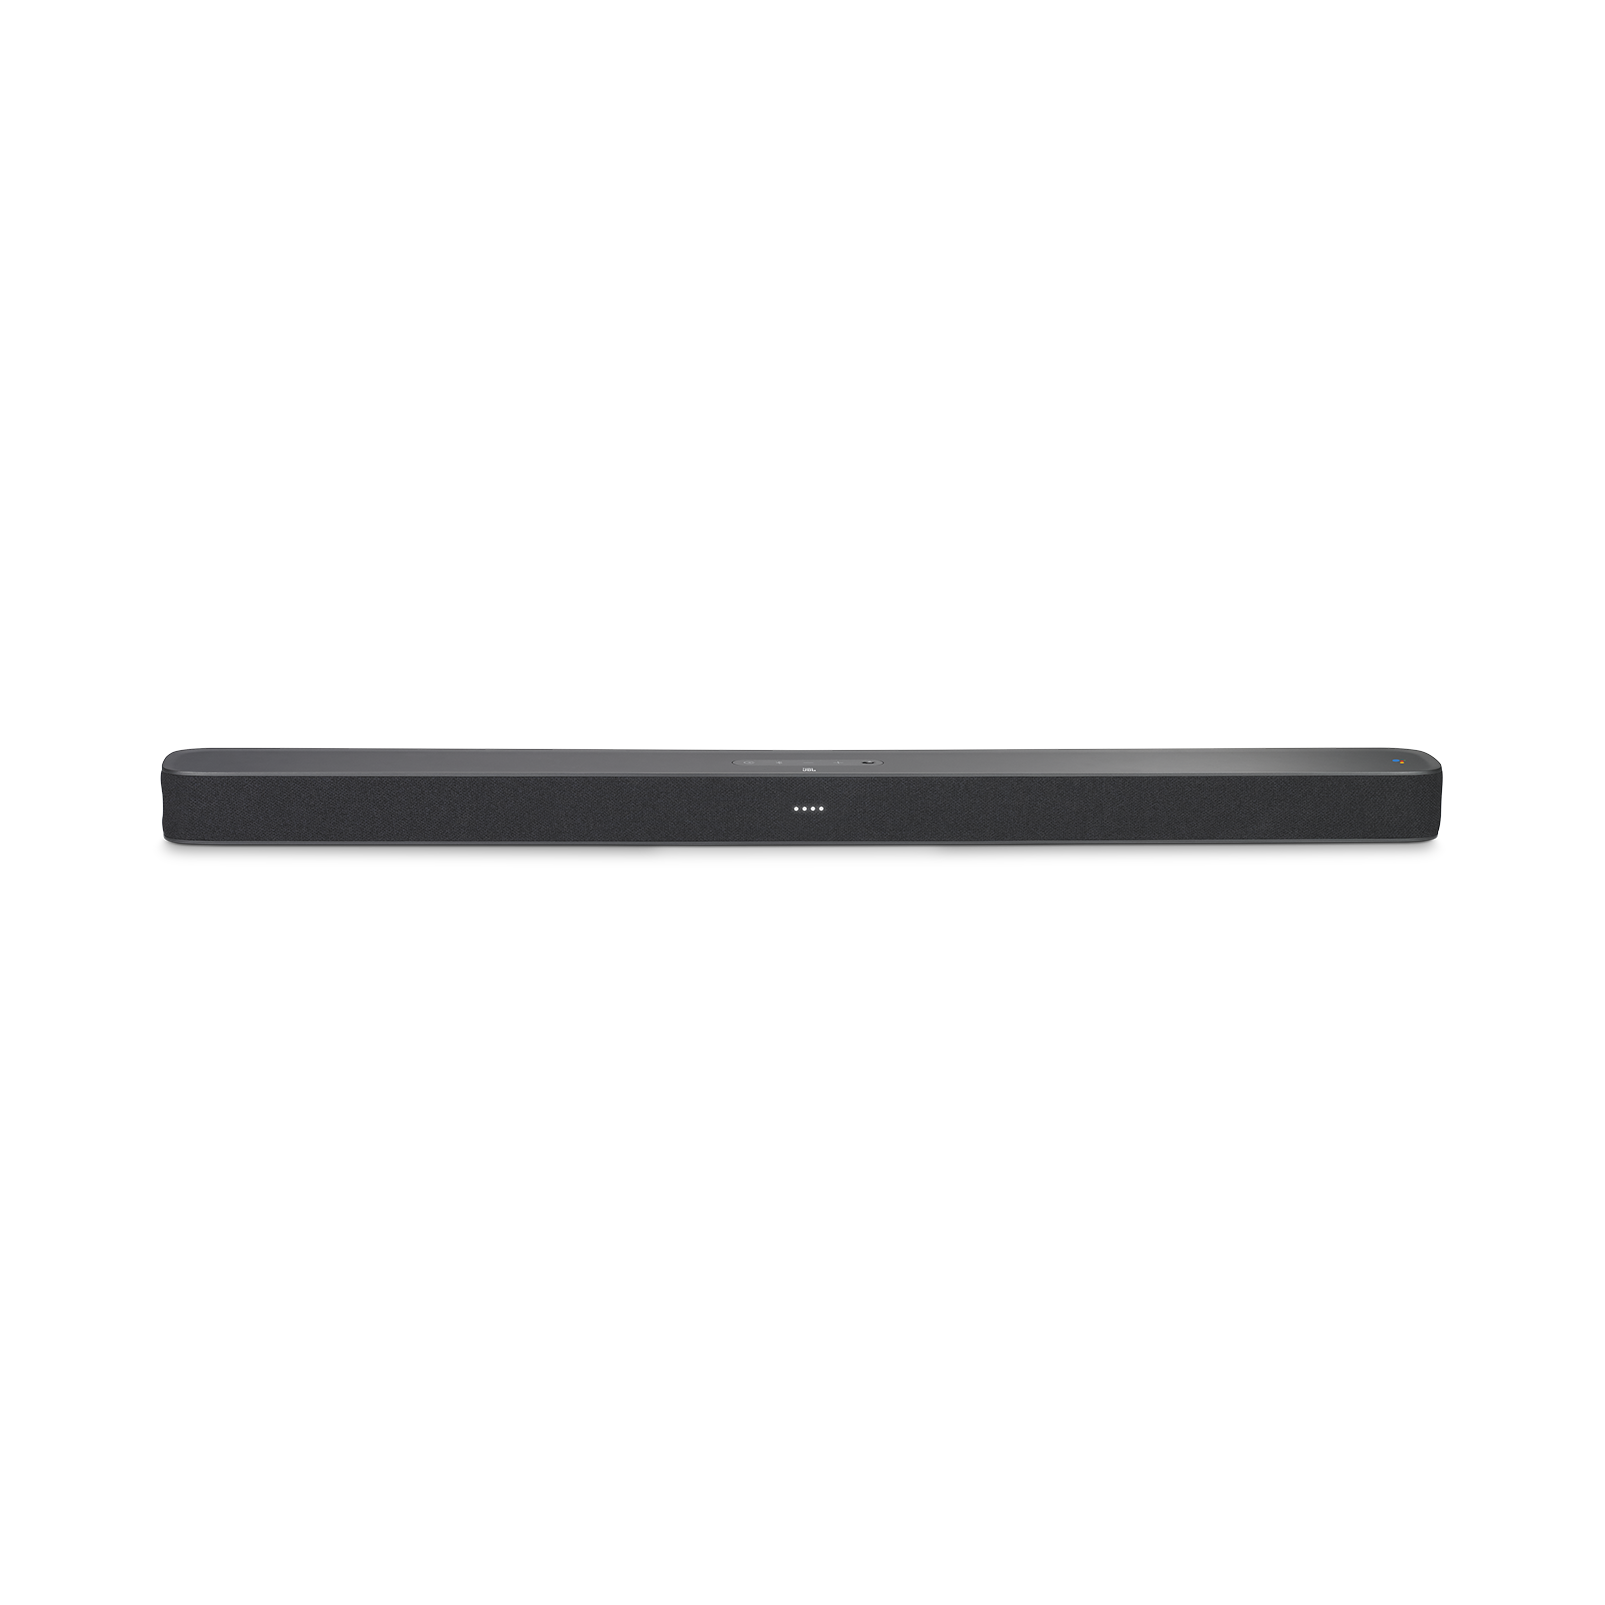 JBL LINK BAR - Grey - Voice-Activated Soundbar with Android TV and the Google Assistant built-in - Front